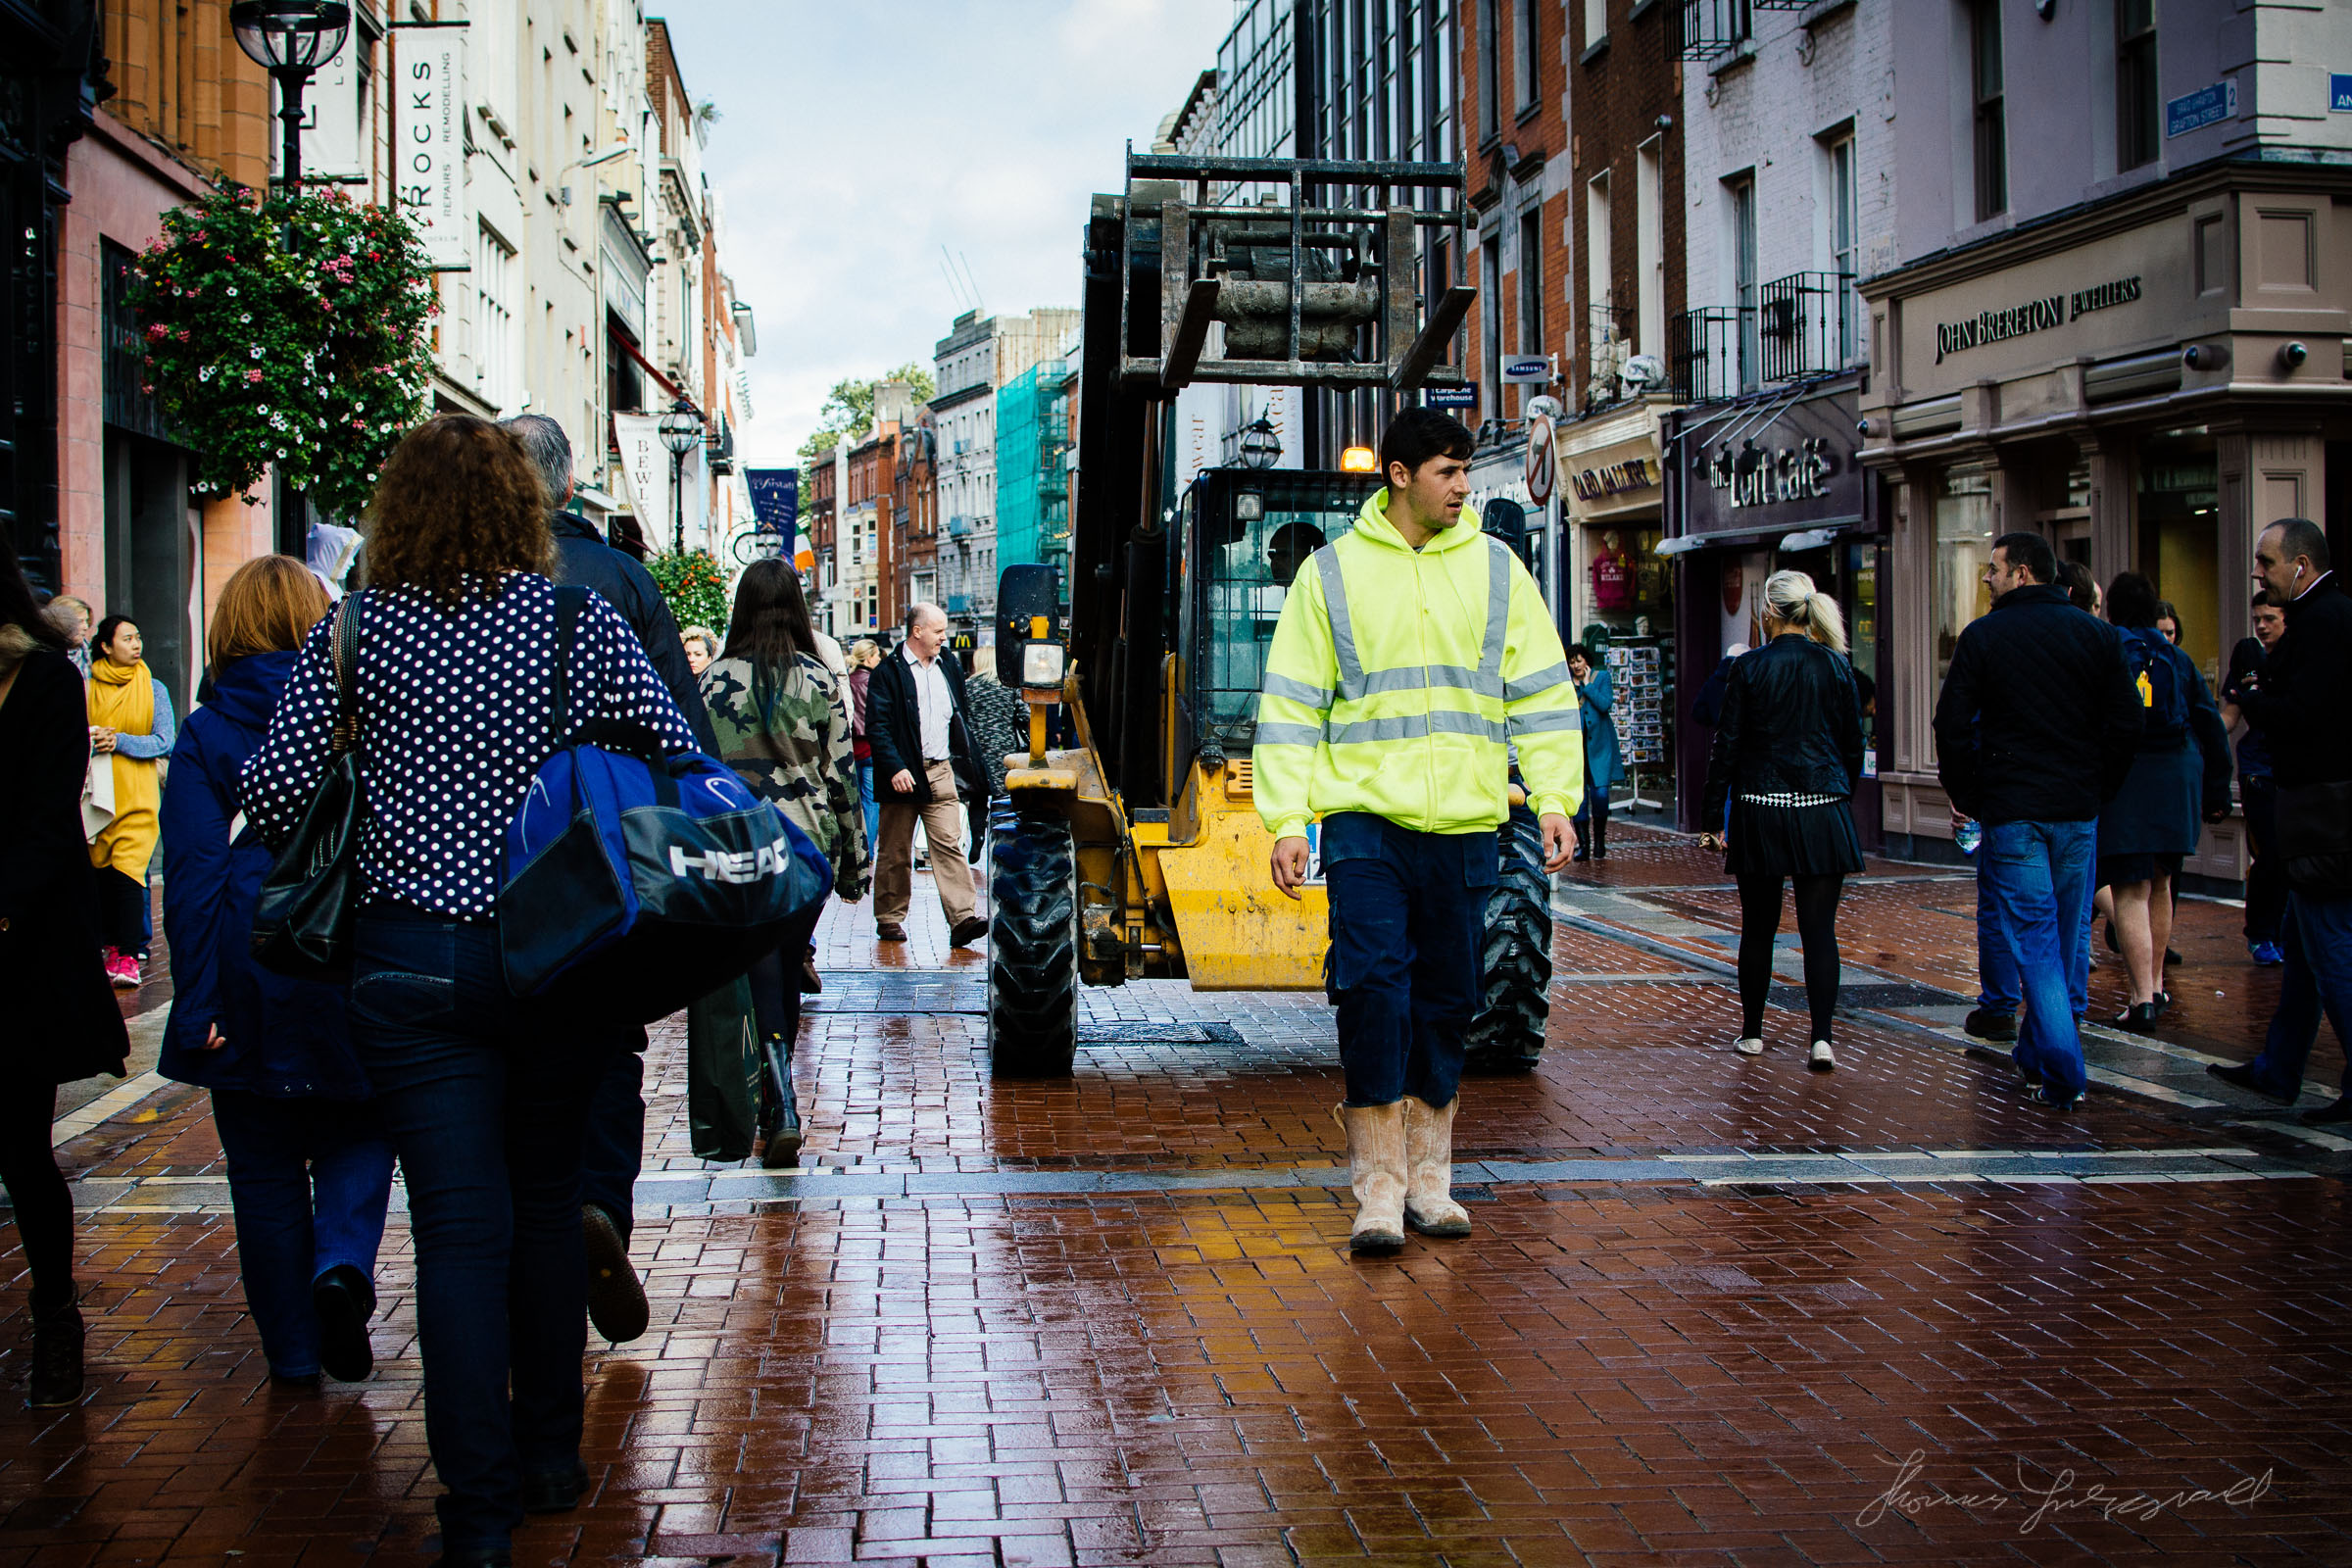 Taking the forklift for a walk down Grafton Street! For more: h